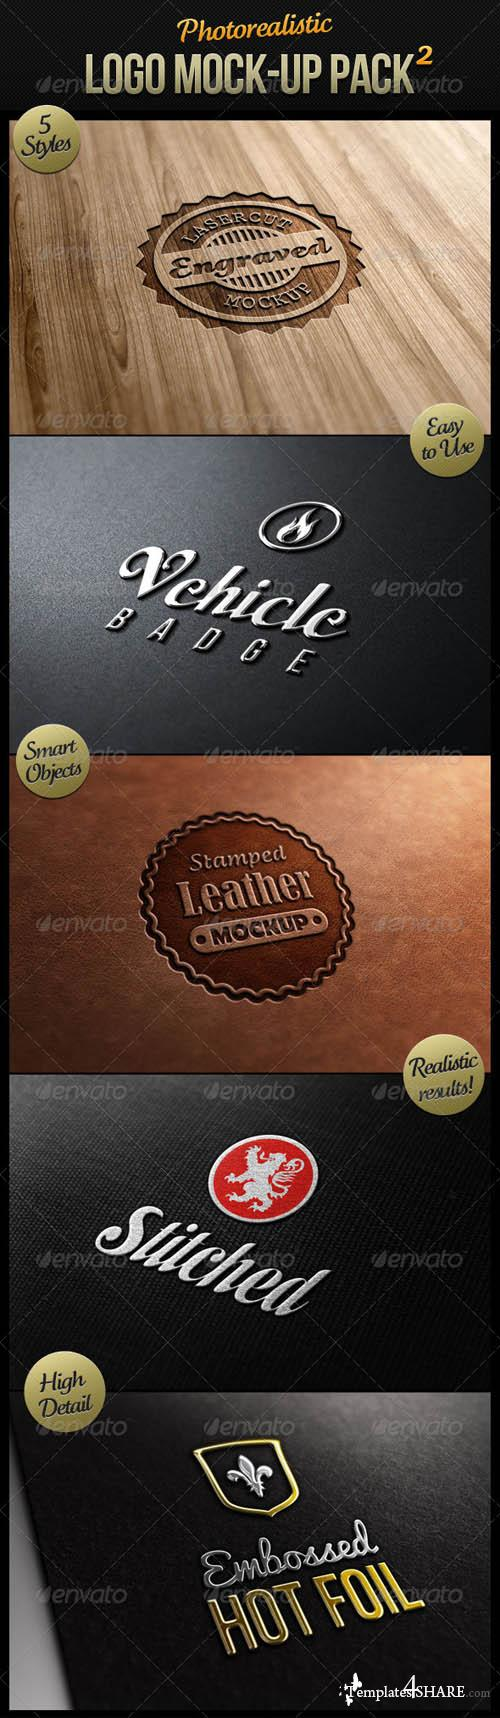 GraphicRiver Photorealistic Logo Mock-Up Pack 2